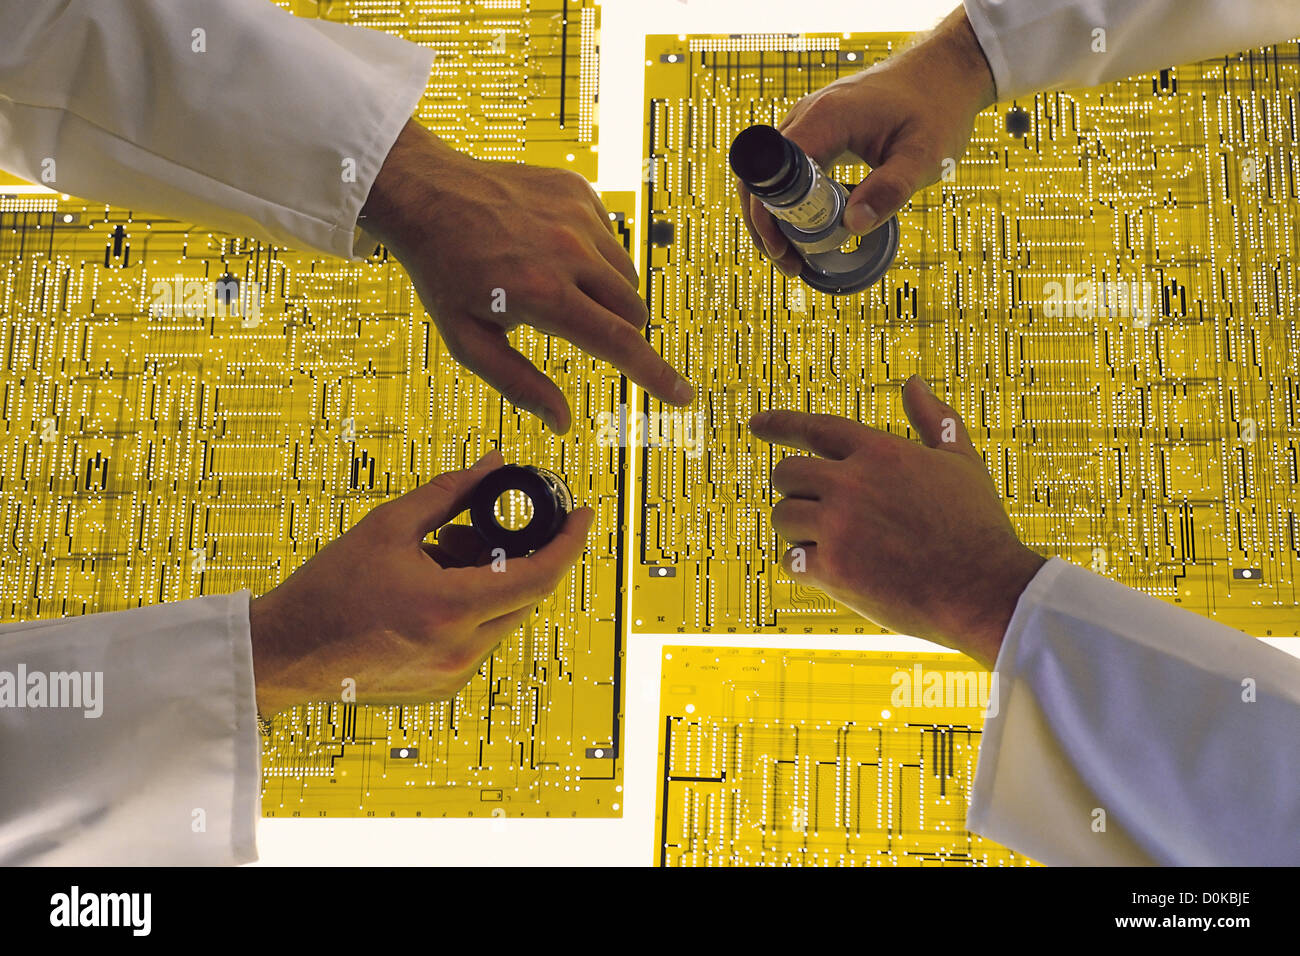 Production of Printed Circuits - Stock Image